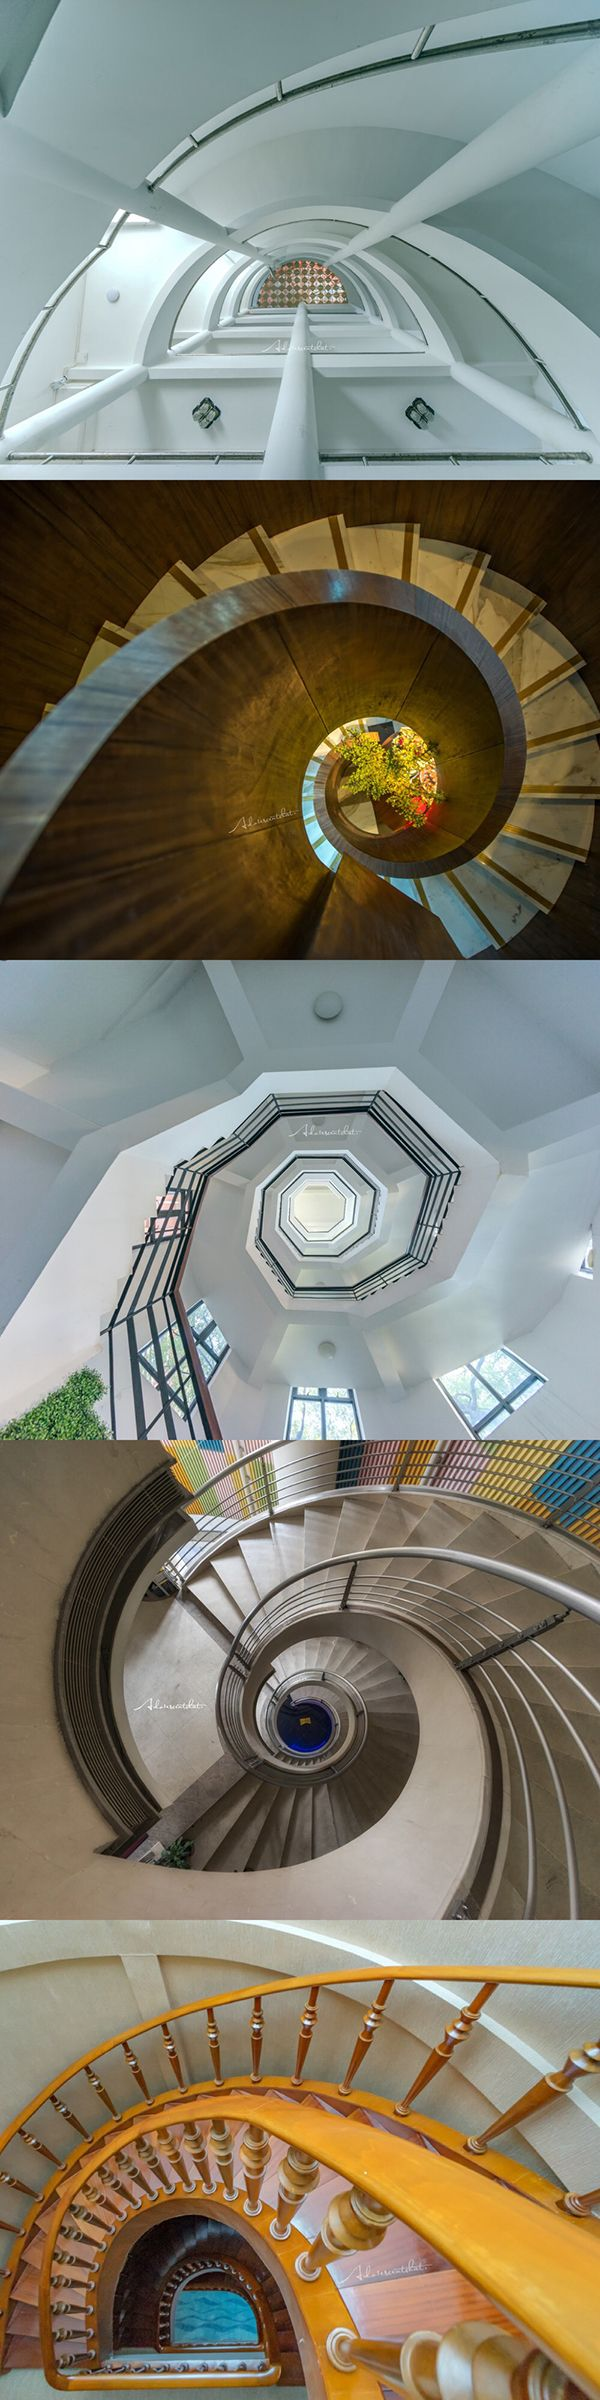 So beautiful!See the Guangzhou rotating staircase collection From another point of view.Guess where  is there? (photo by @AdolescentChat )